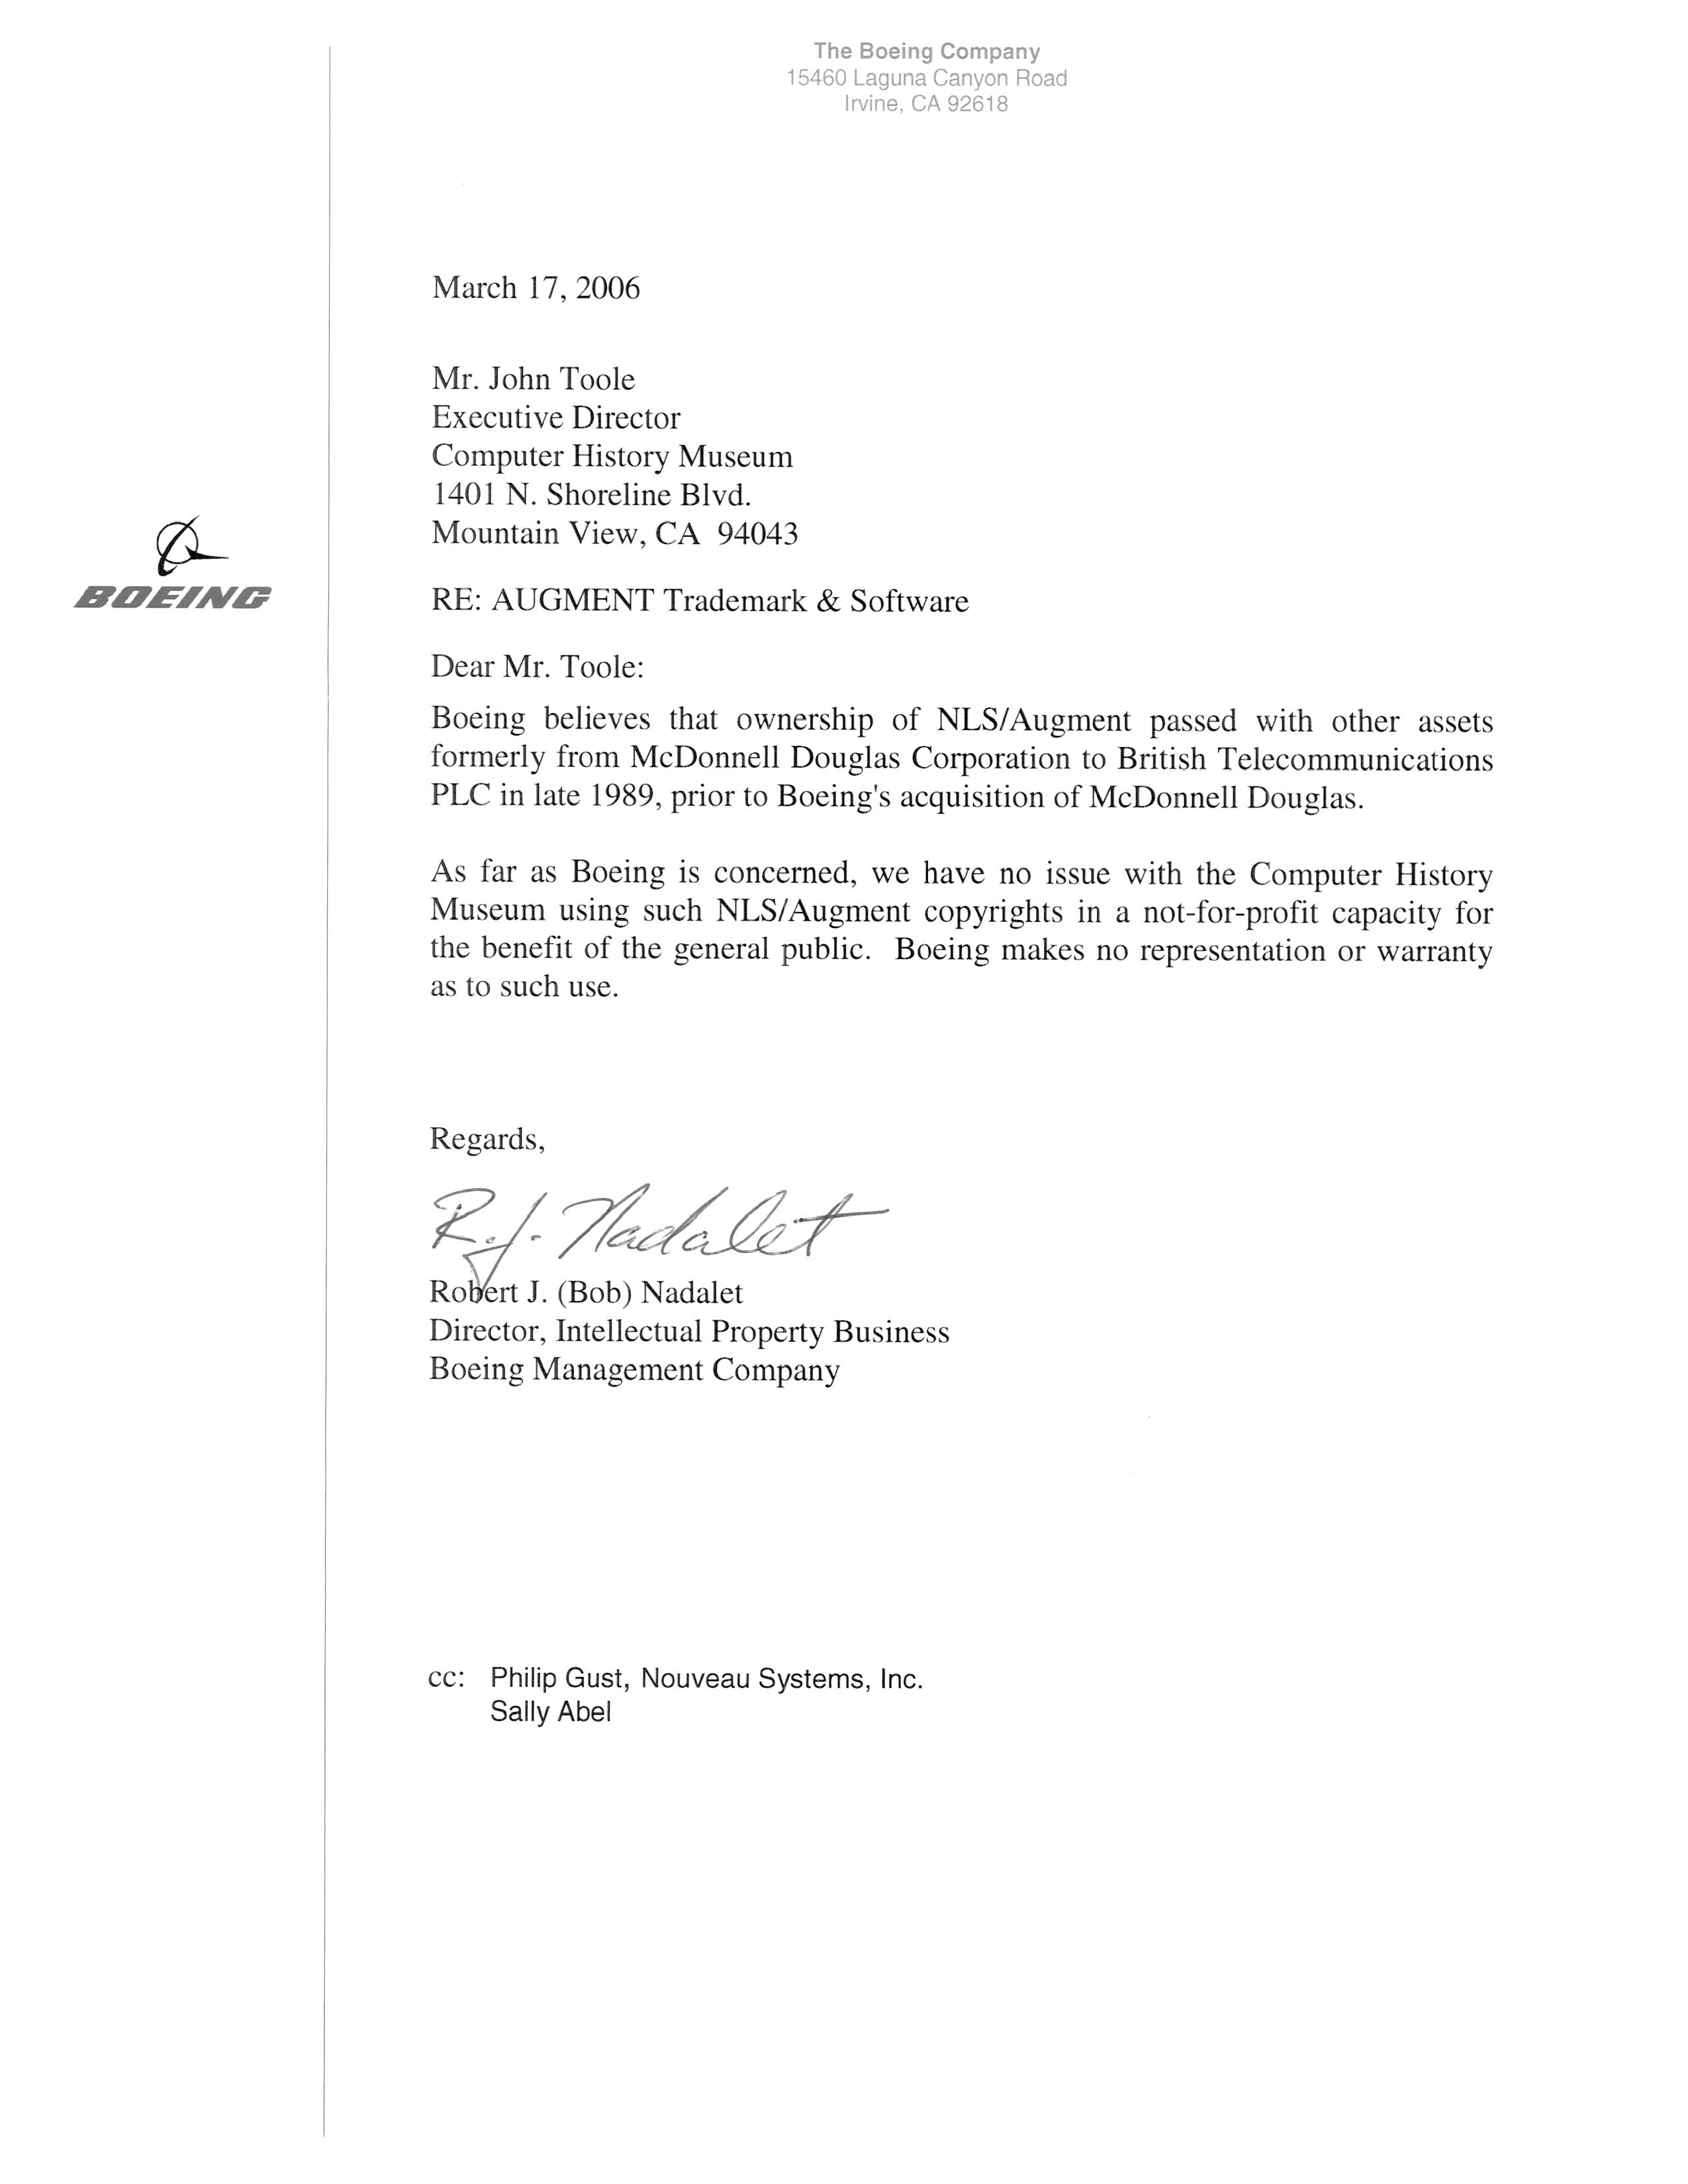 Letter template for permission best of child travel consent letter poa letters alan noscrapleftbehind co poa letters letters of authorization permission jose mulinohouse co letters of authorization permission sample consent spiritdancerdesigns Choice Image